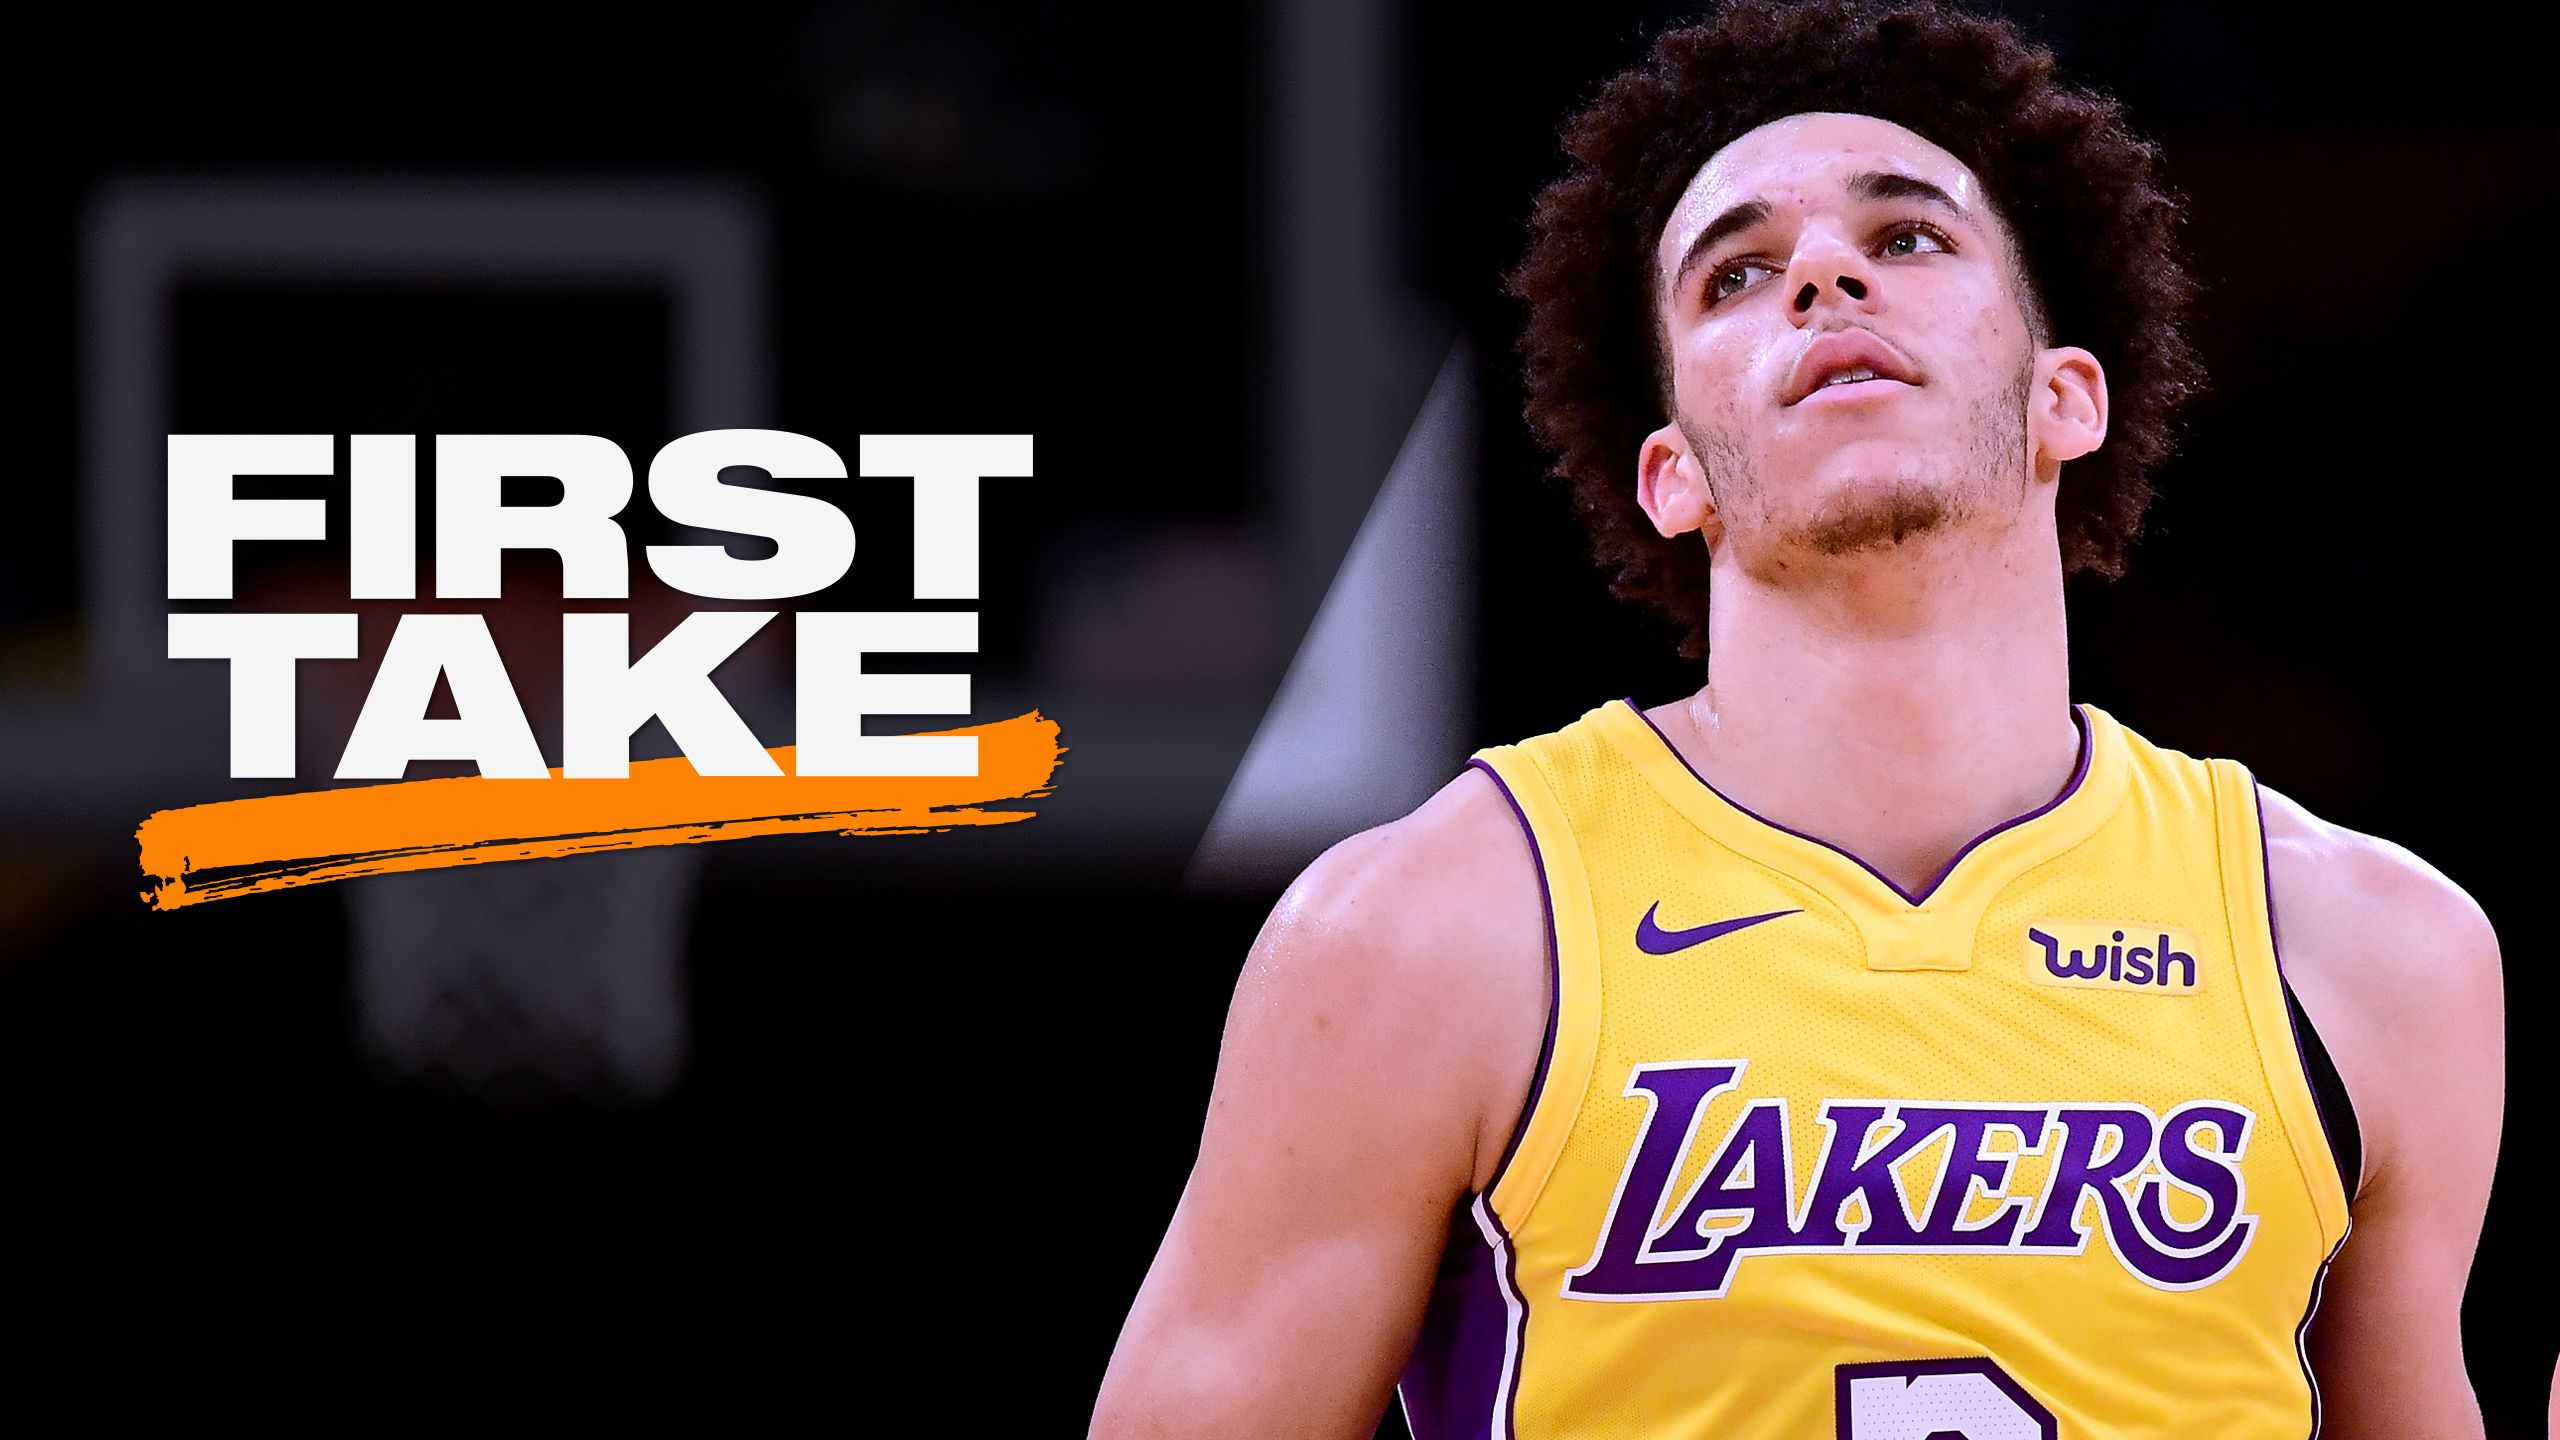 Fri, 10/20 - First Take